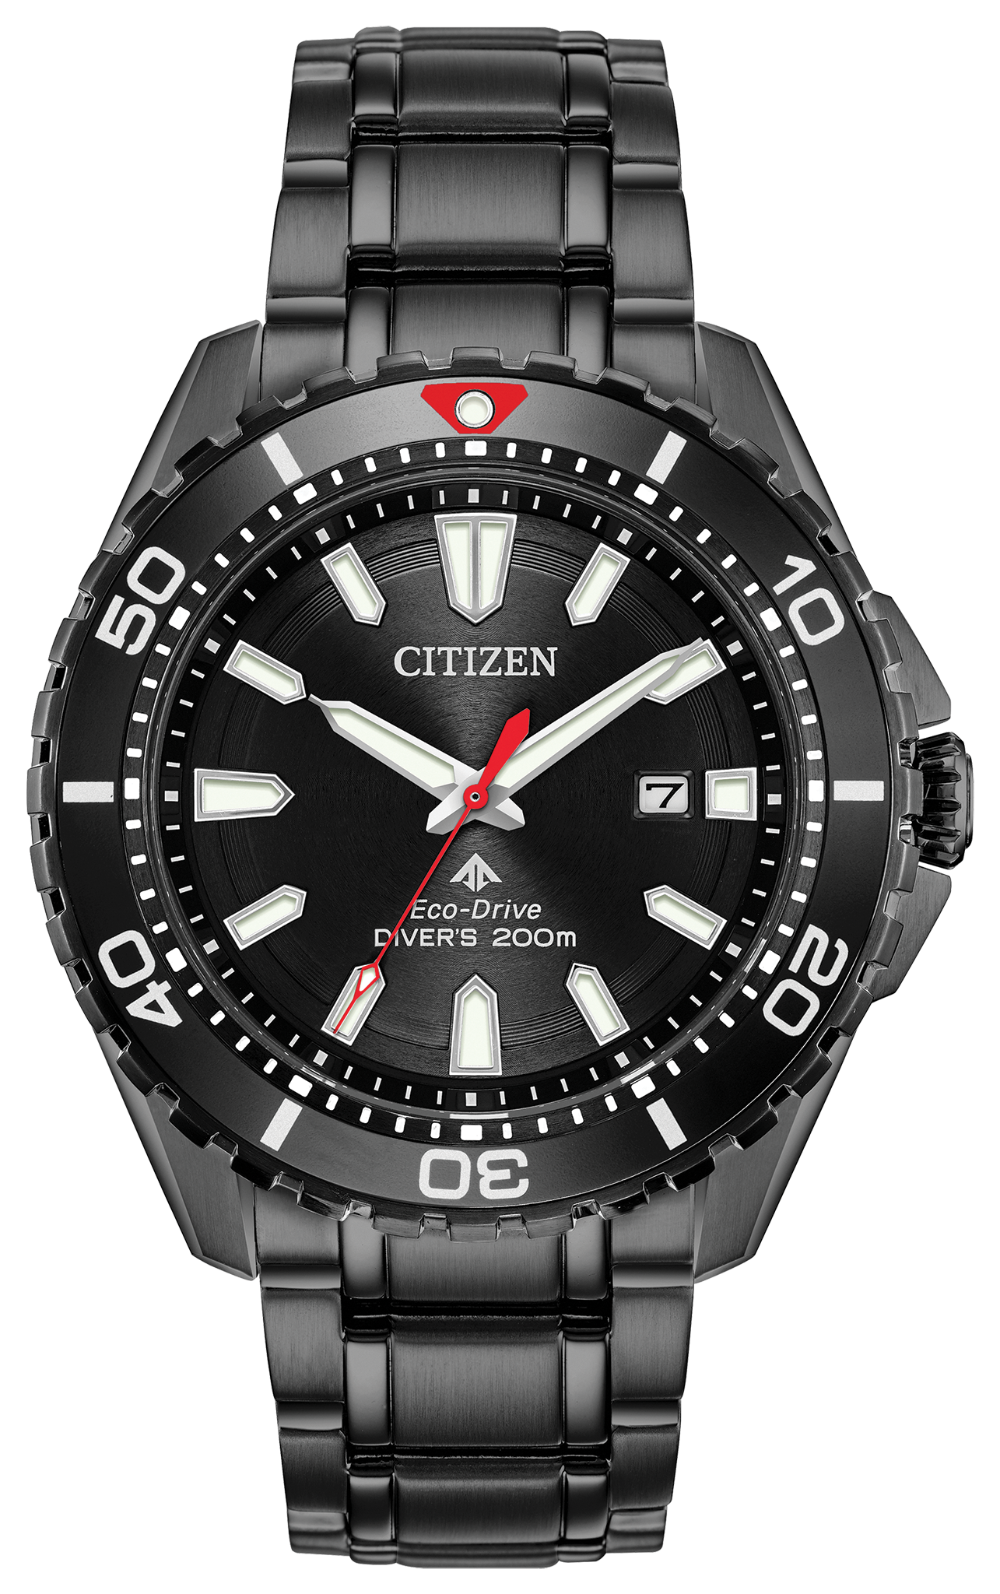 Citizen Promaster Diver 45mm Watch with Black Dial